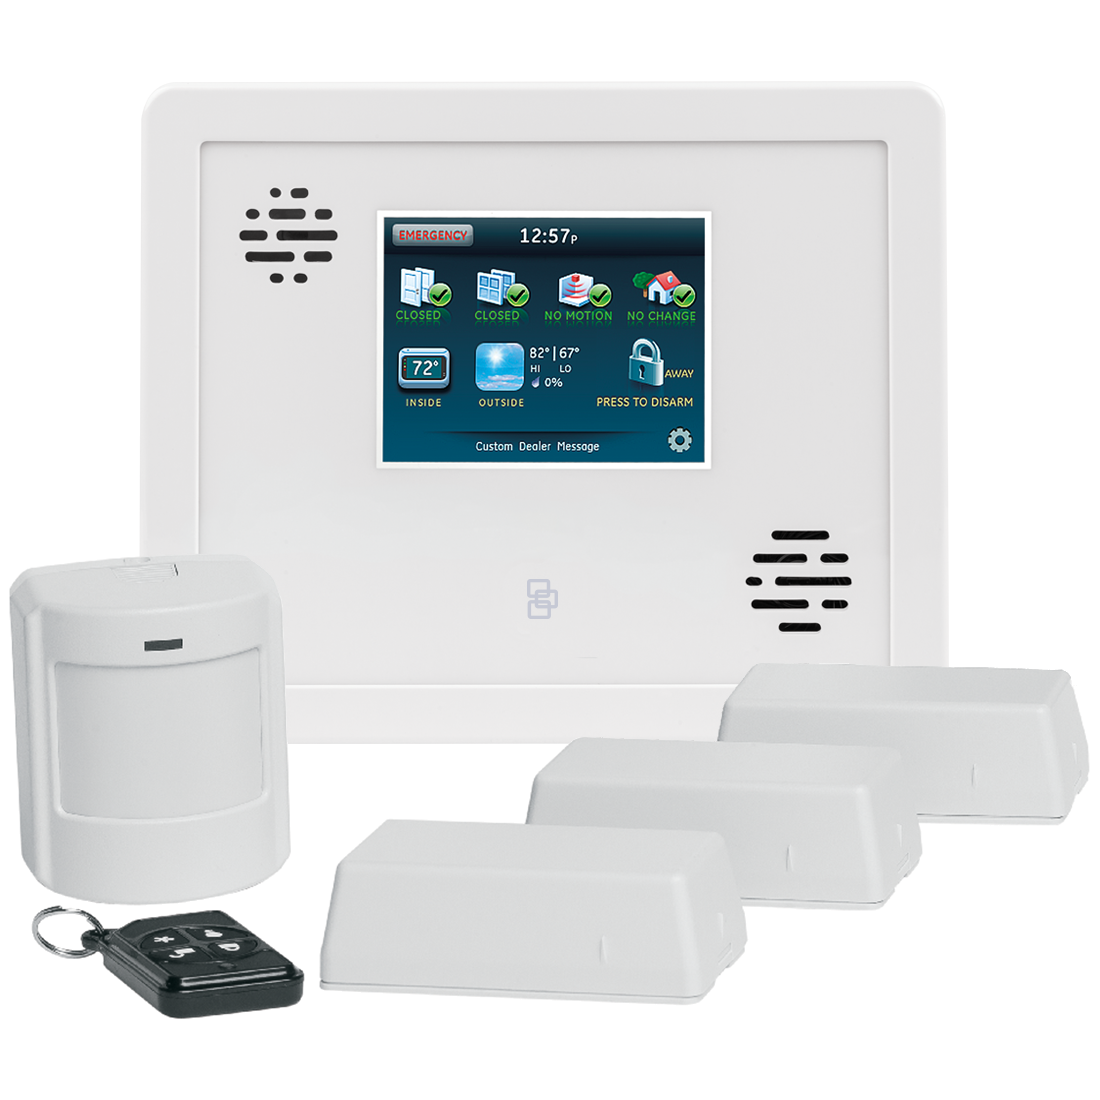 Interlogix simon xti landline wireless security system solutioingenieria Image collections